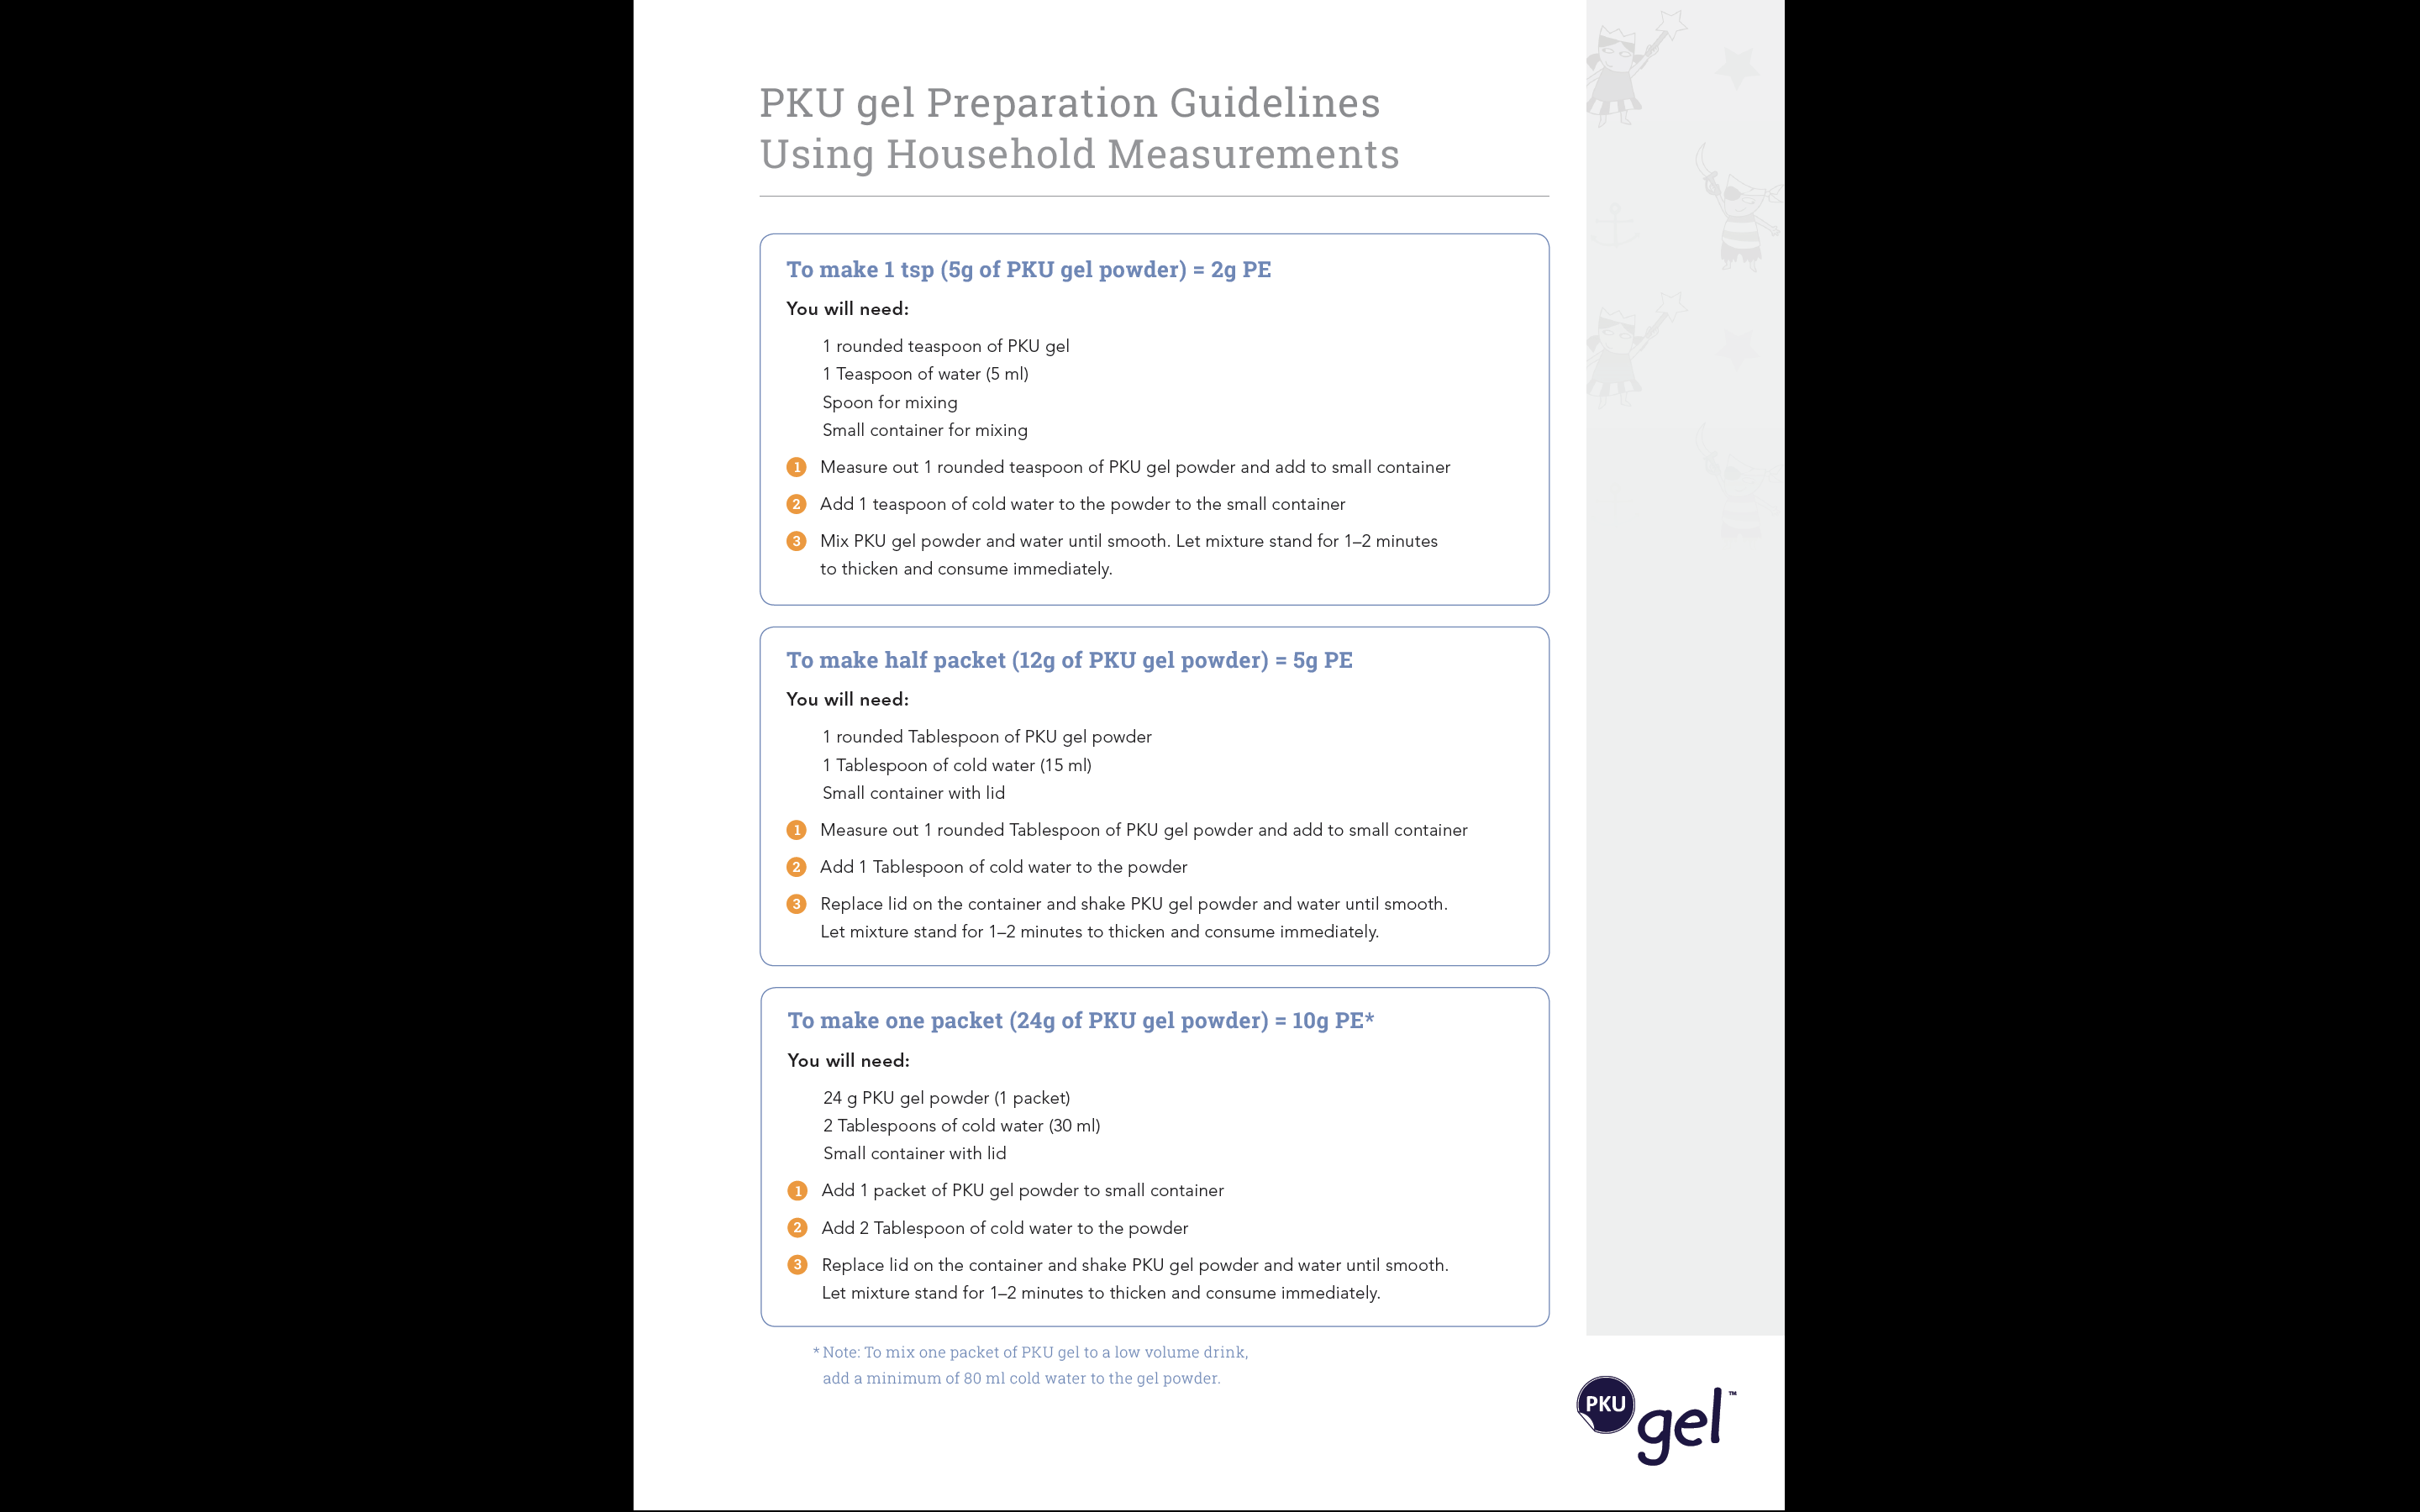 PKU gel Preparation Guidelines